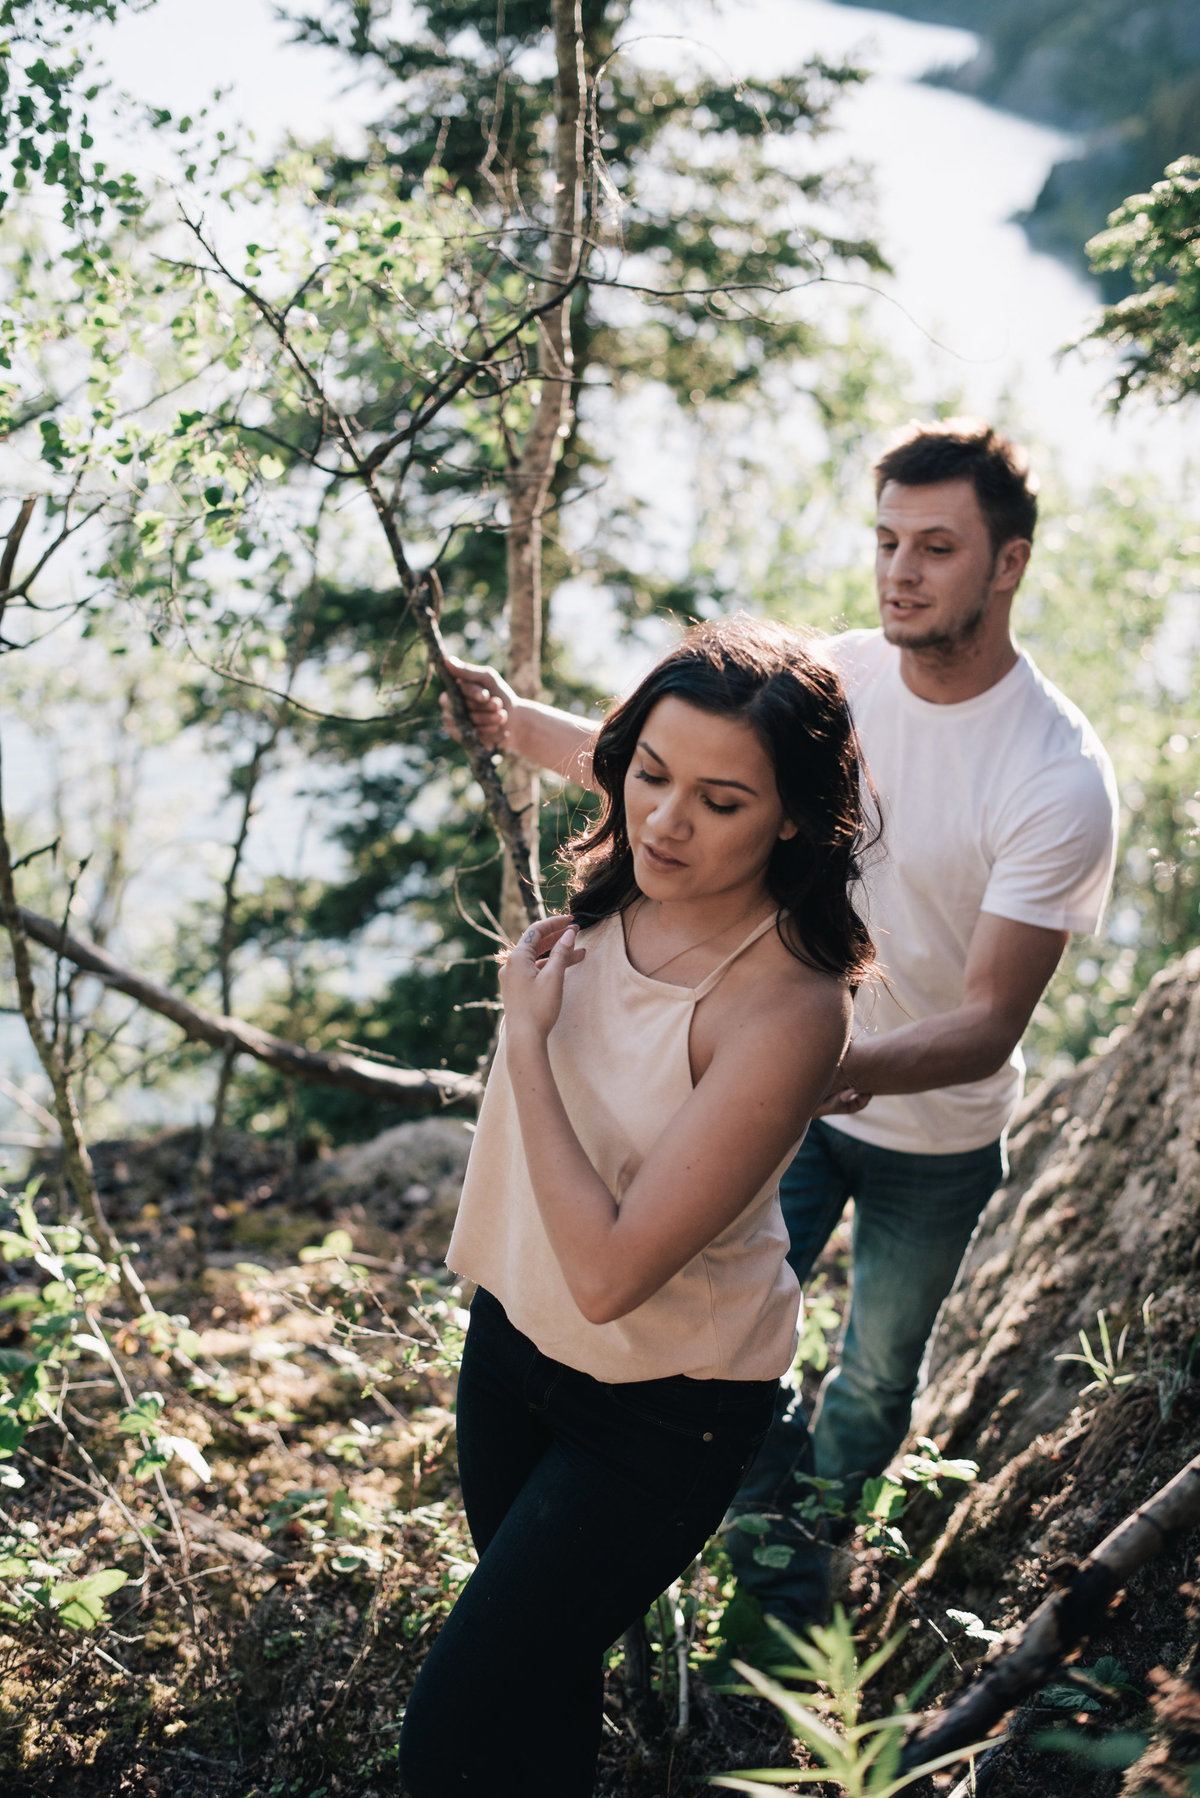 005_Erica Rose Photography_Anchorage Engagement Photographer